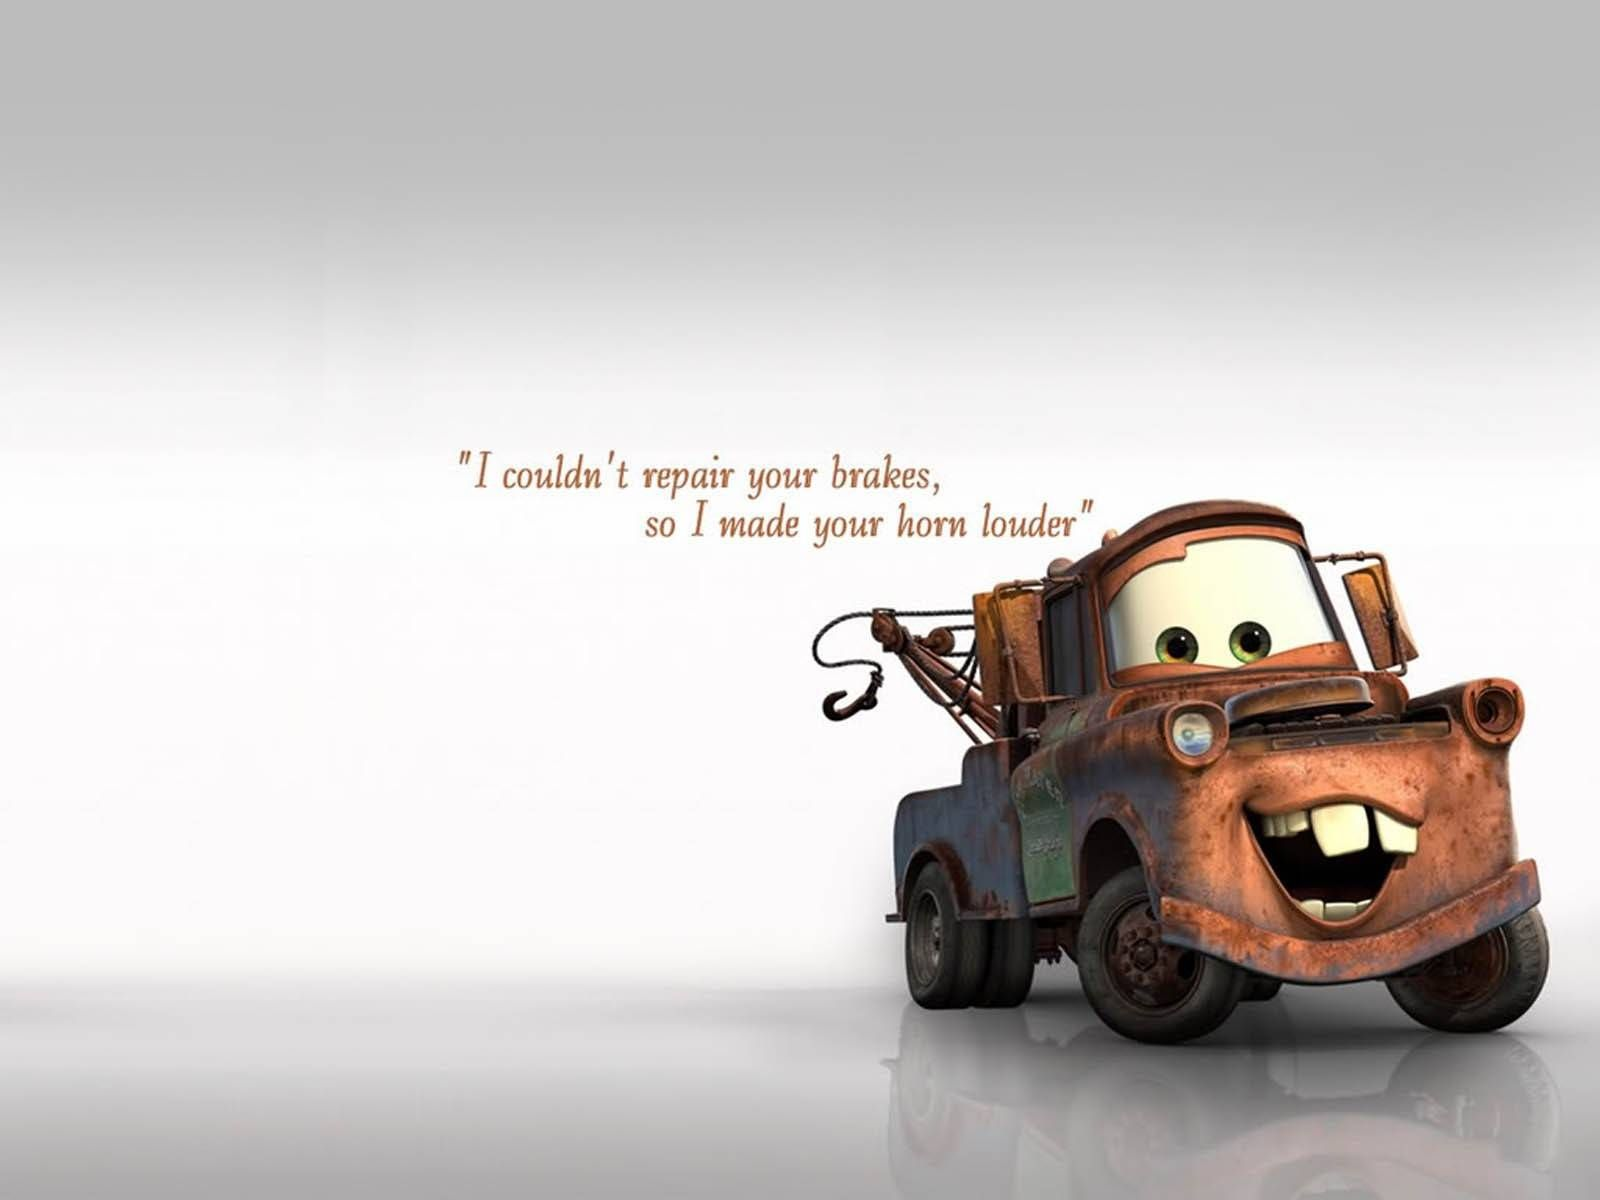 car quote from mater quotes pinterest car quotes and cars. Black Bedroom Furniture Sets. Home Design Ideas